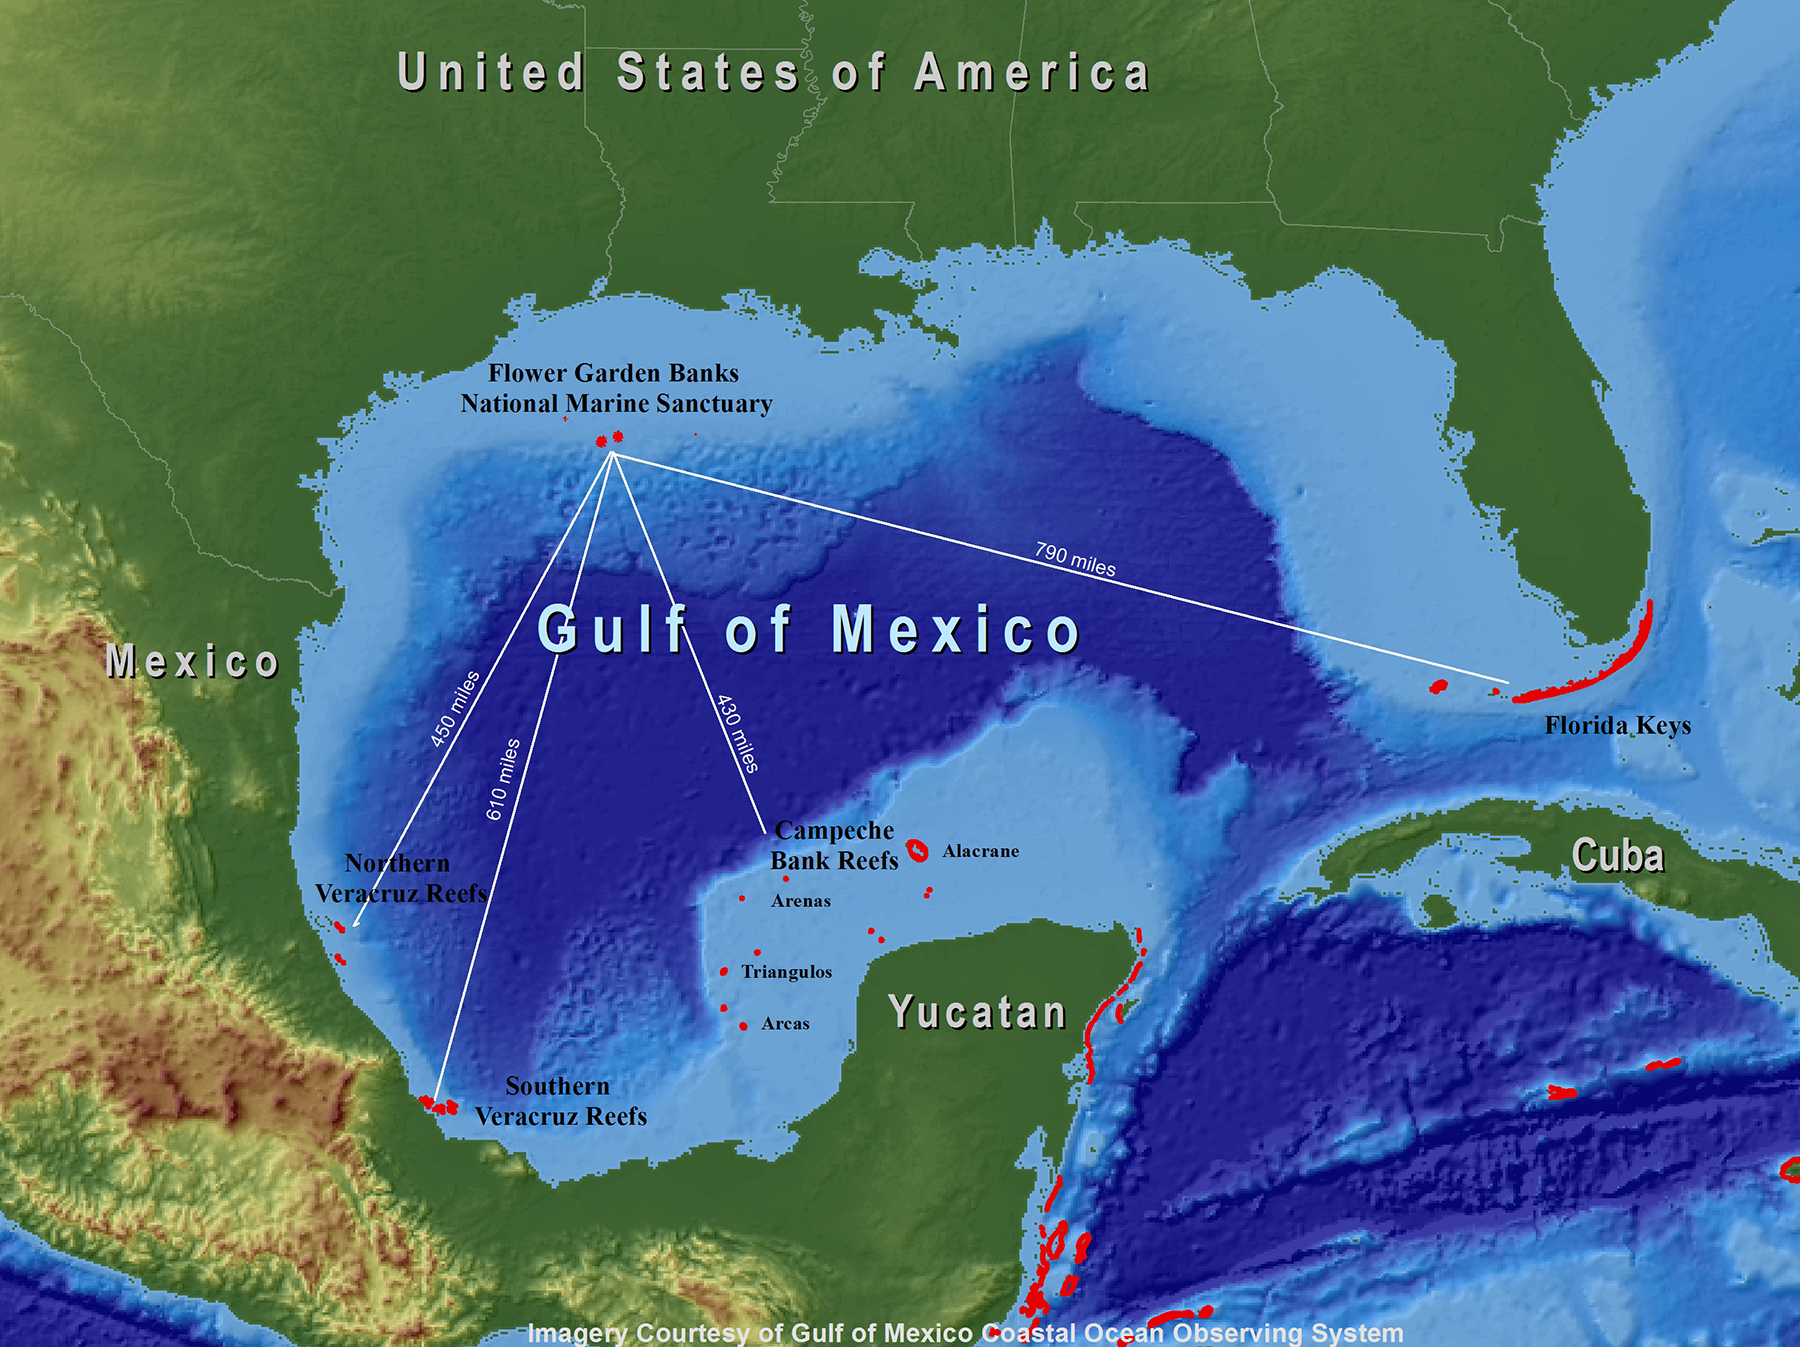 gulf of mexico map showing distances from fgbnms to nearest coral reefs in mexico cuba